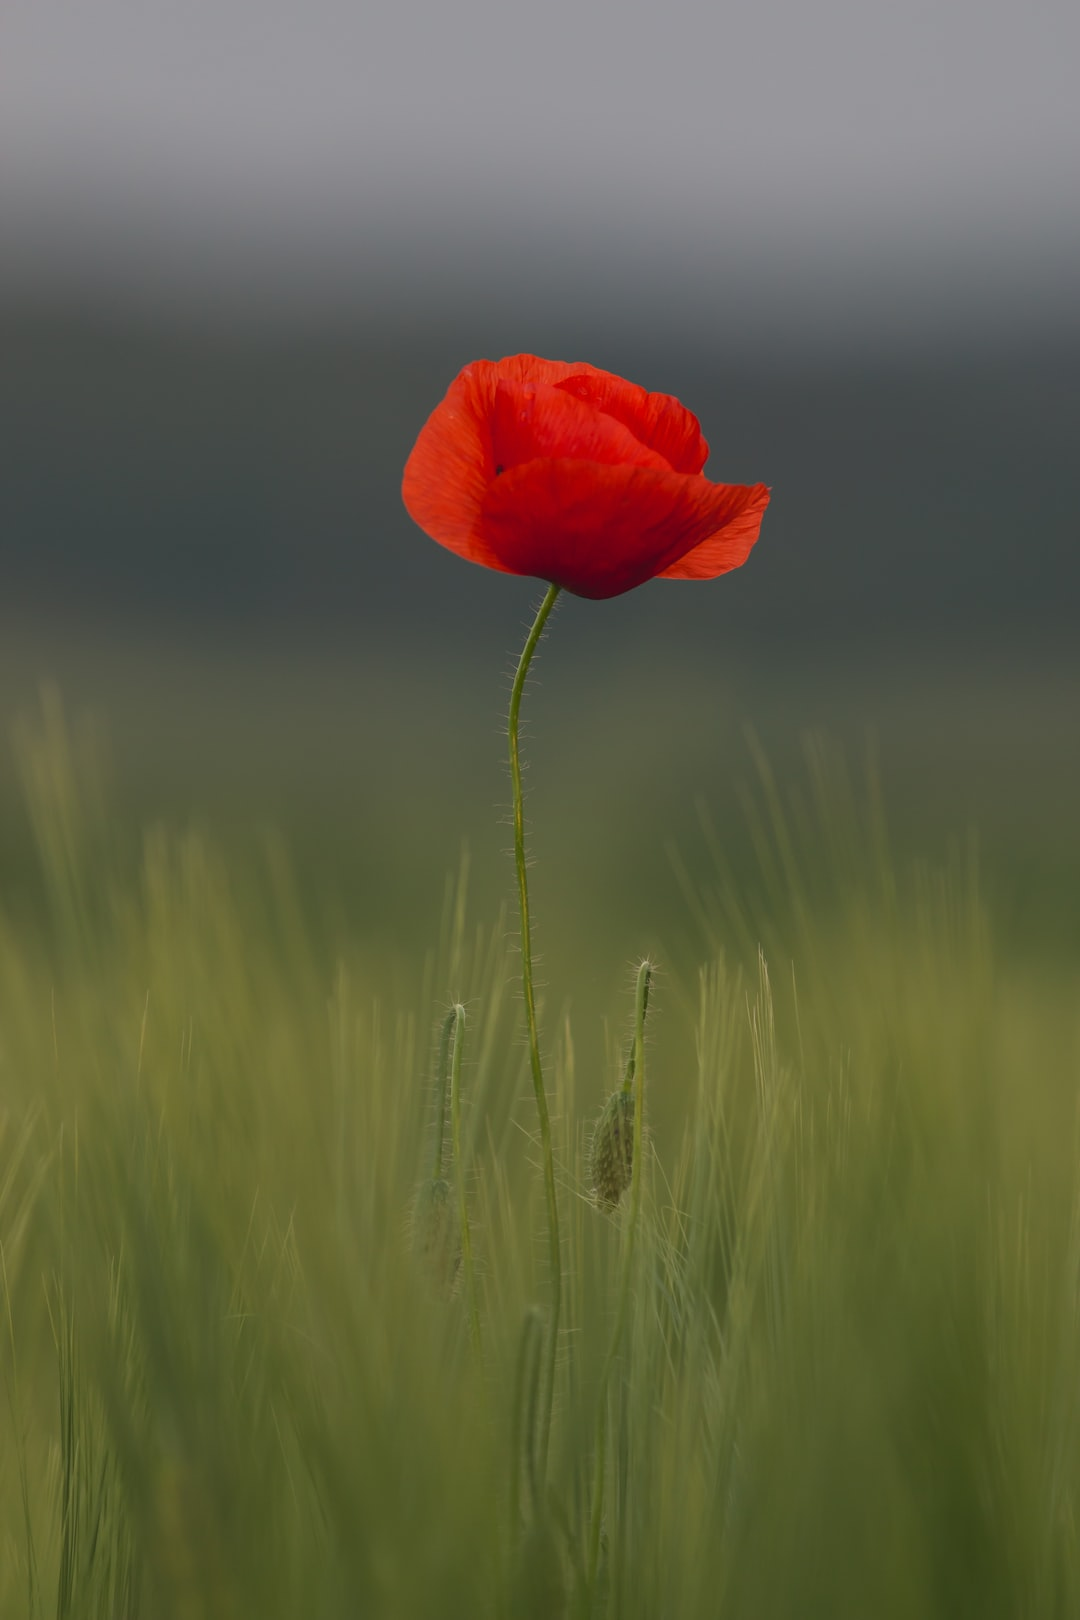 500+ Poppy Pictures [HD] | Download Free Images on Unsplash